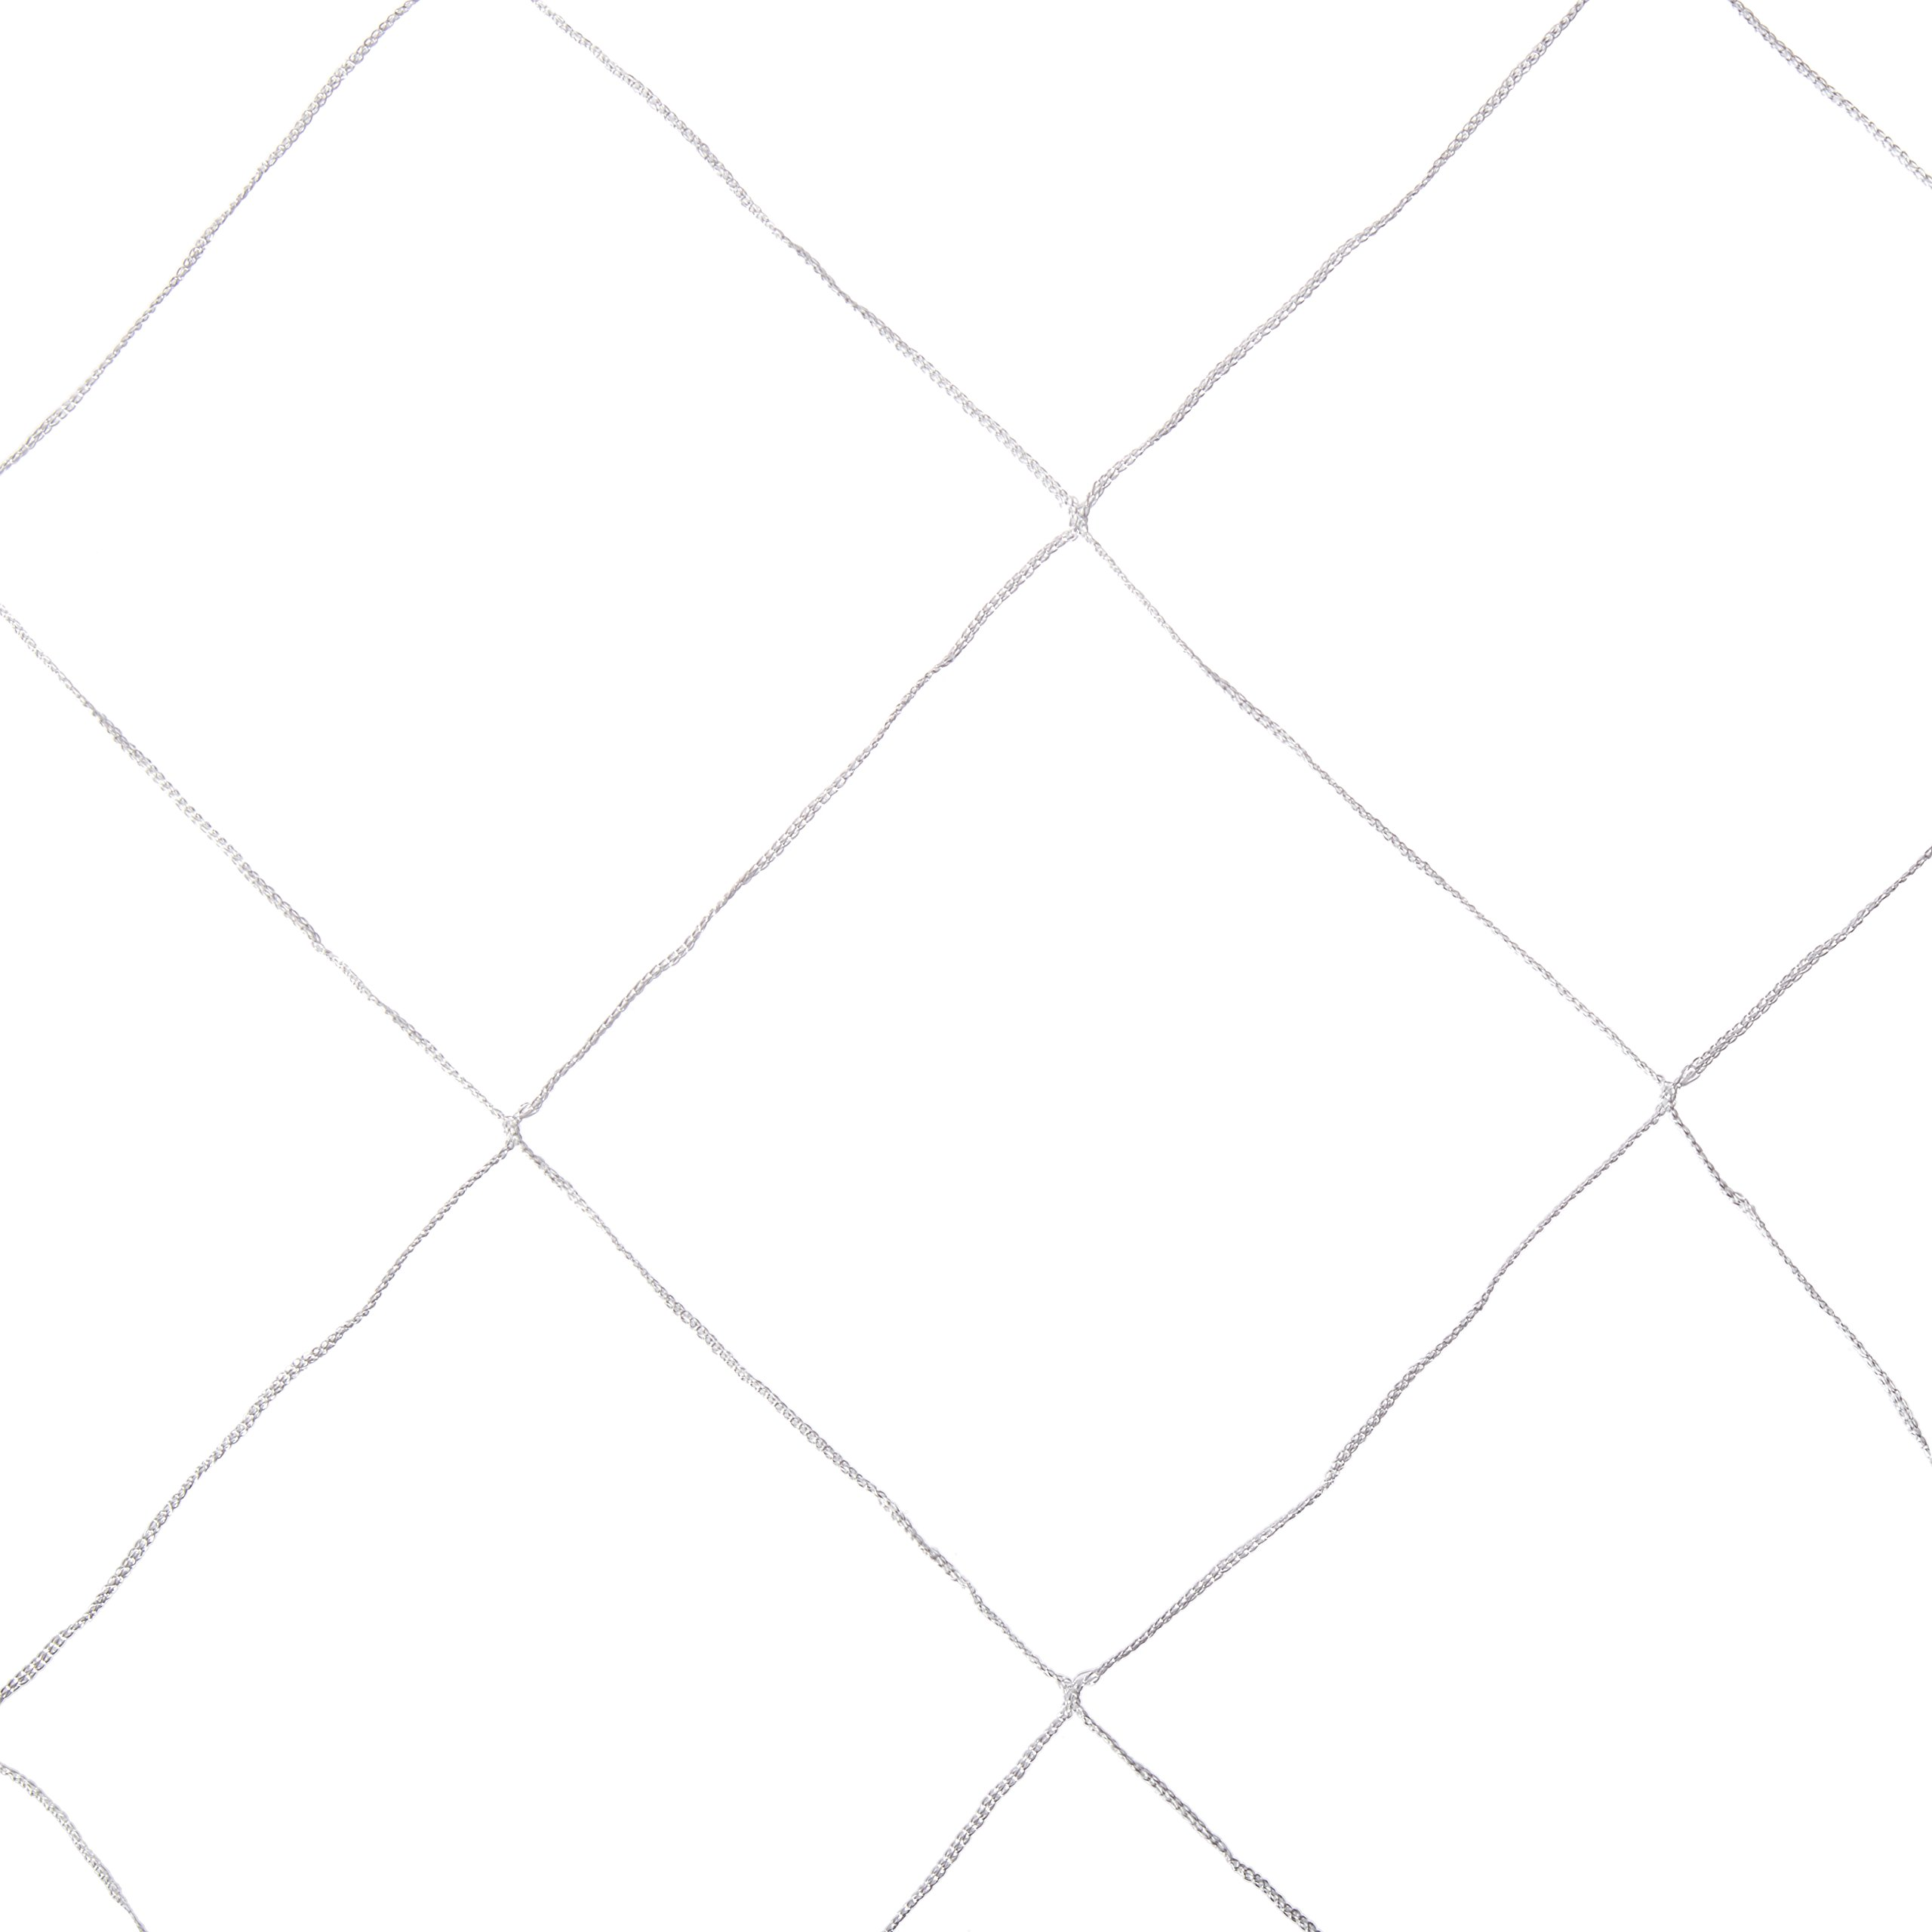 uno Soft Mesh Trellis Netting with 6 in Squares, 5'' W